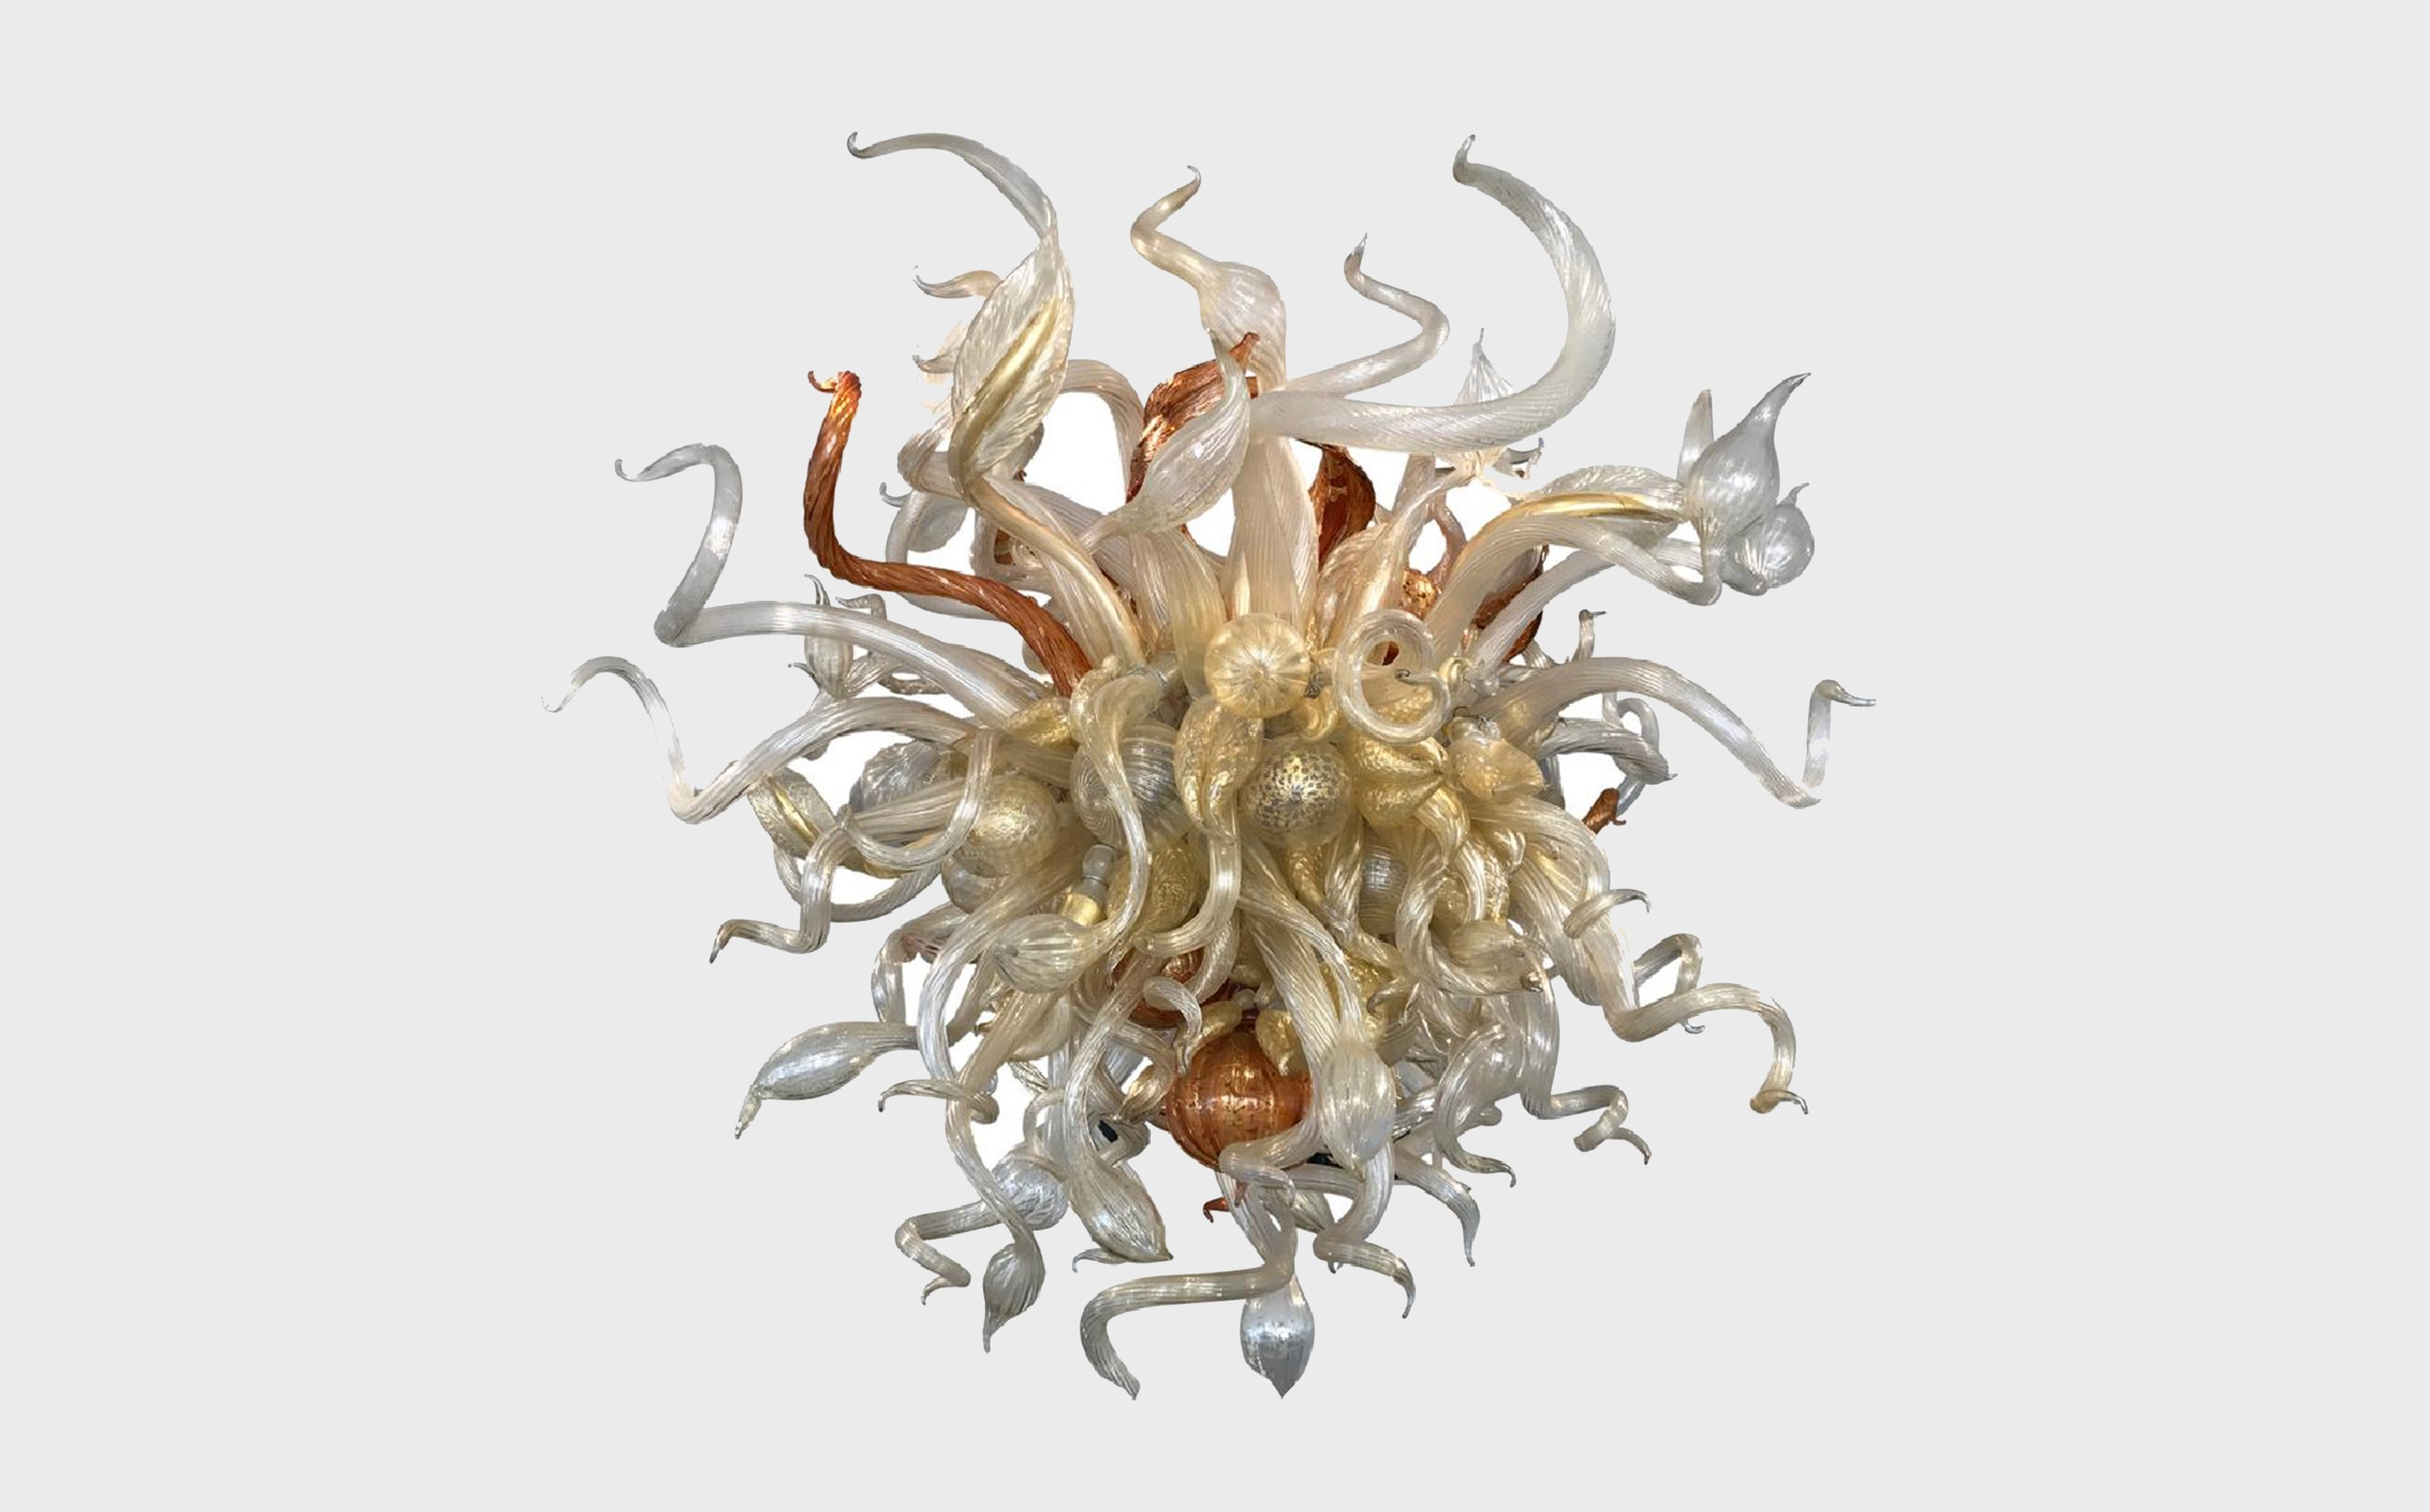 DALE CHIHULY: BLOWN GLASS CHANDELIER